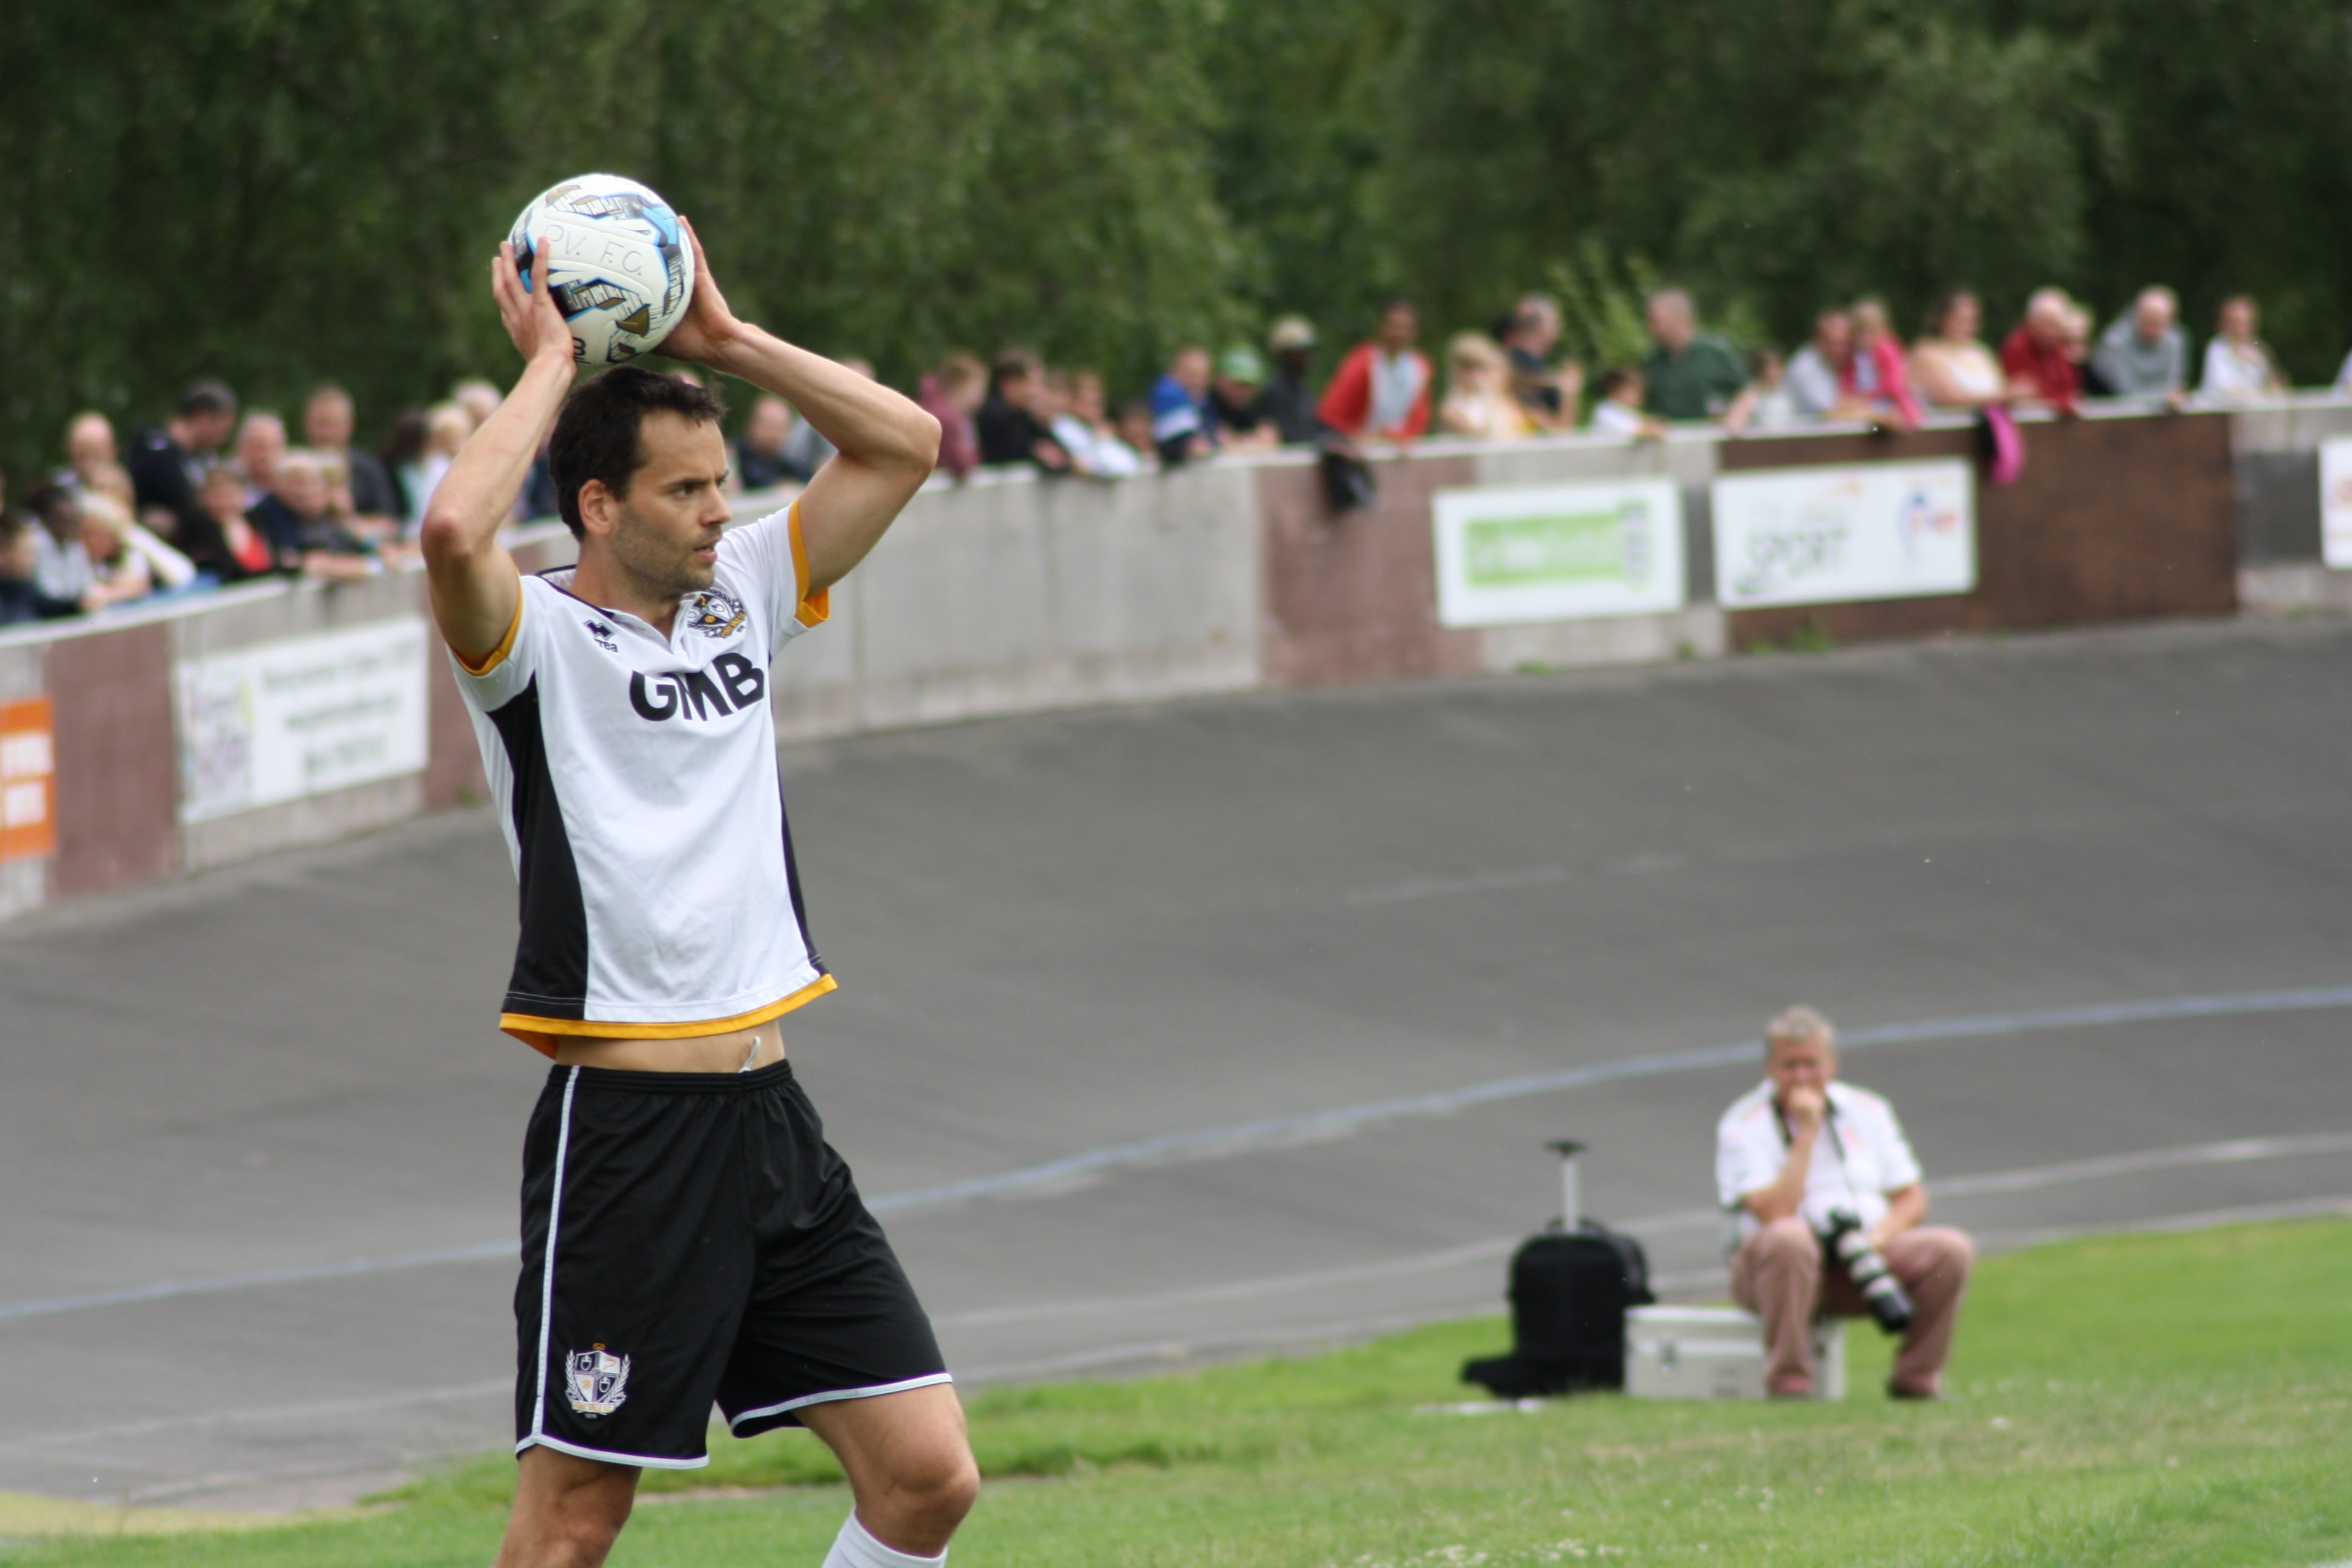 Ben Purkiss takes a throw against Newcastle Town in 2015